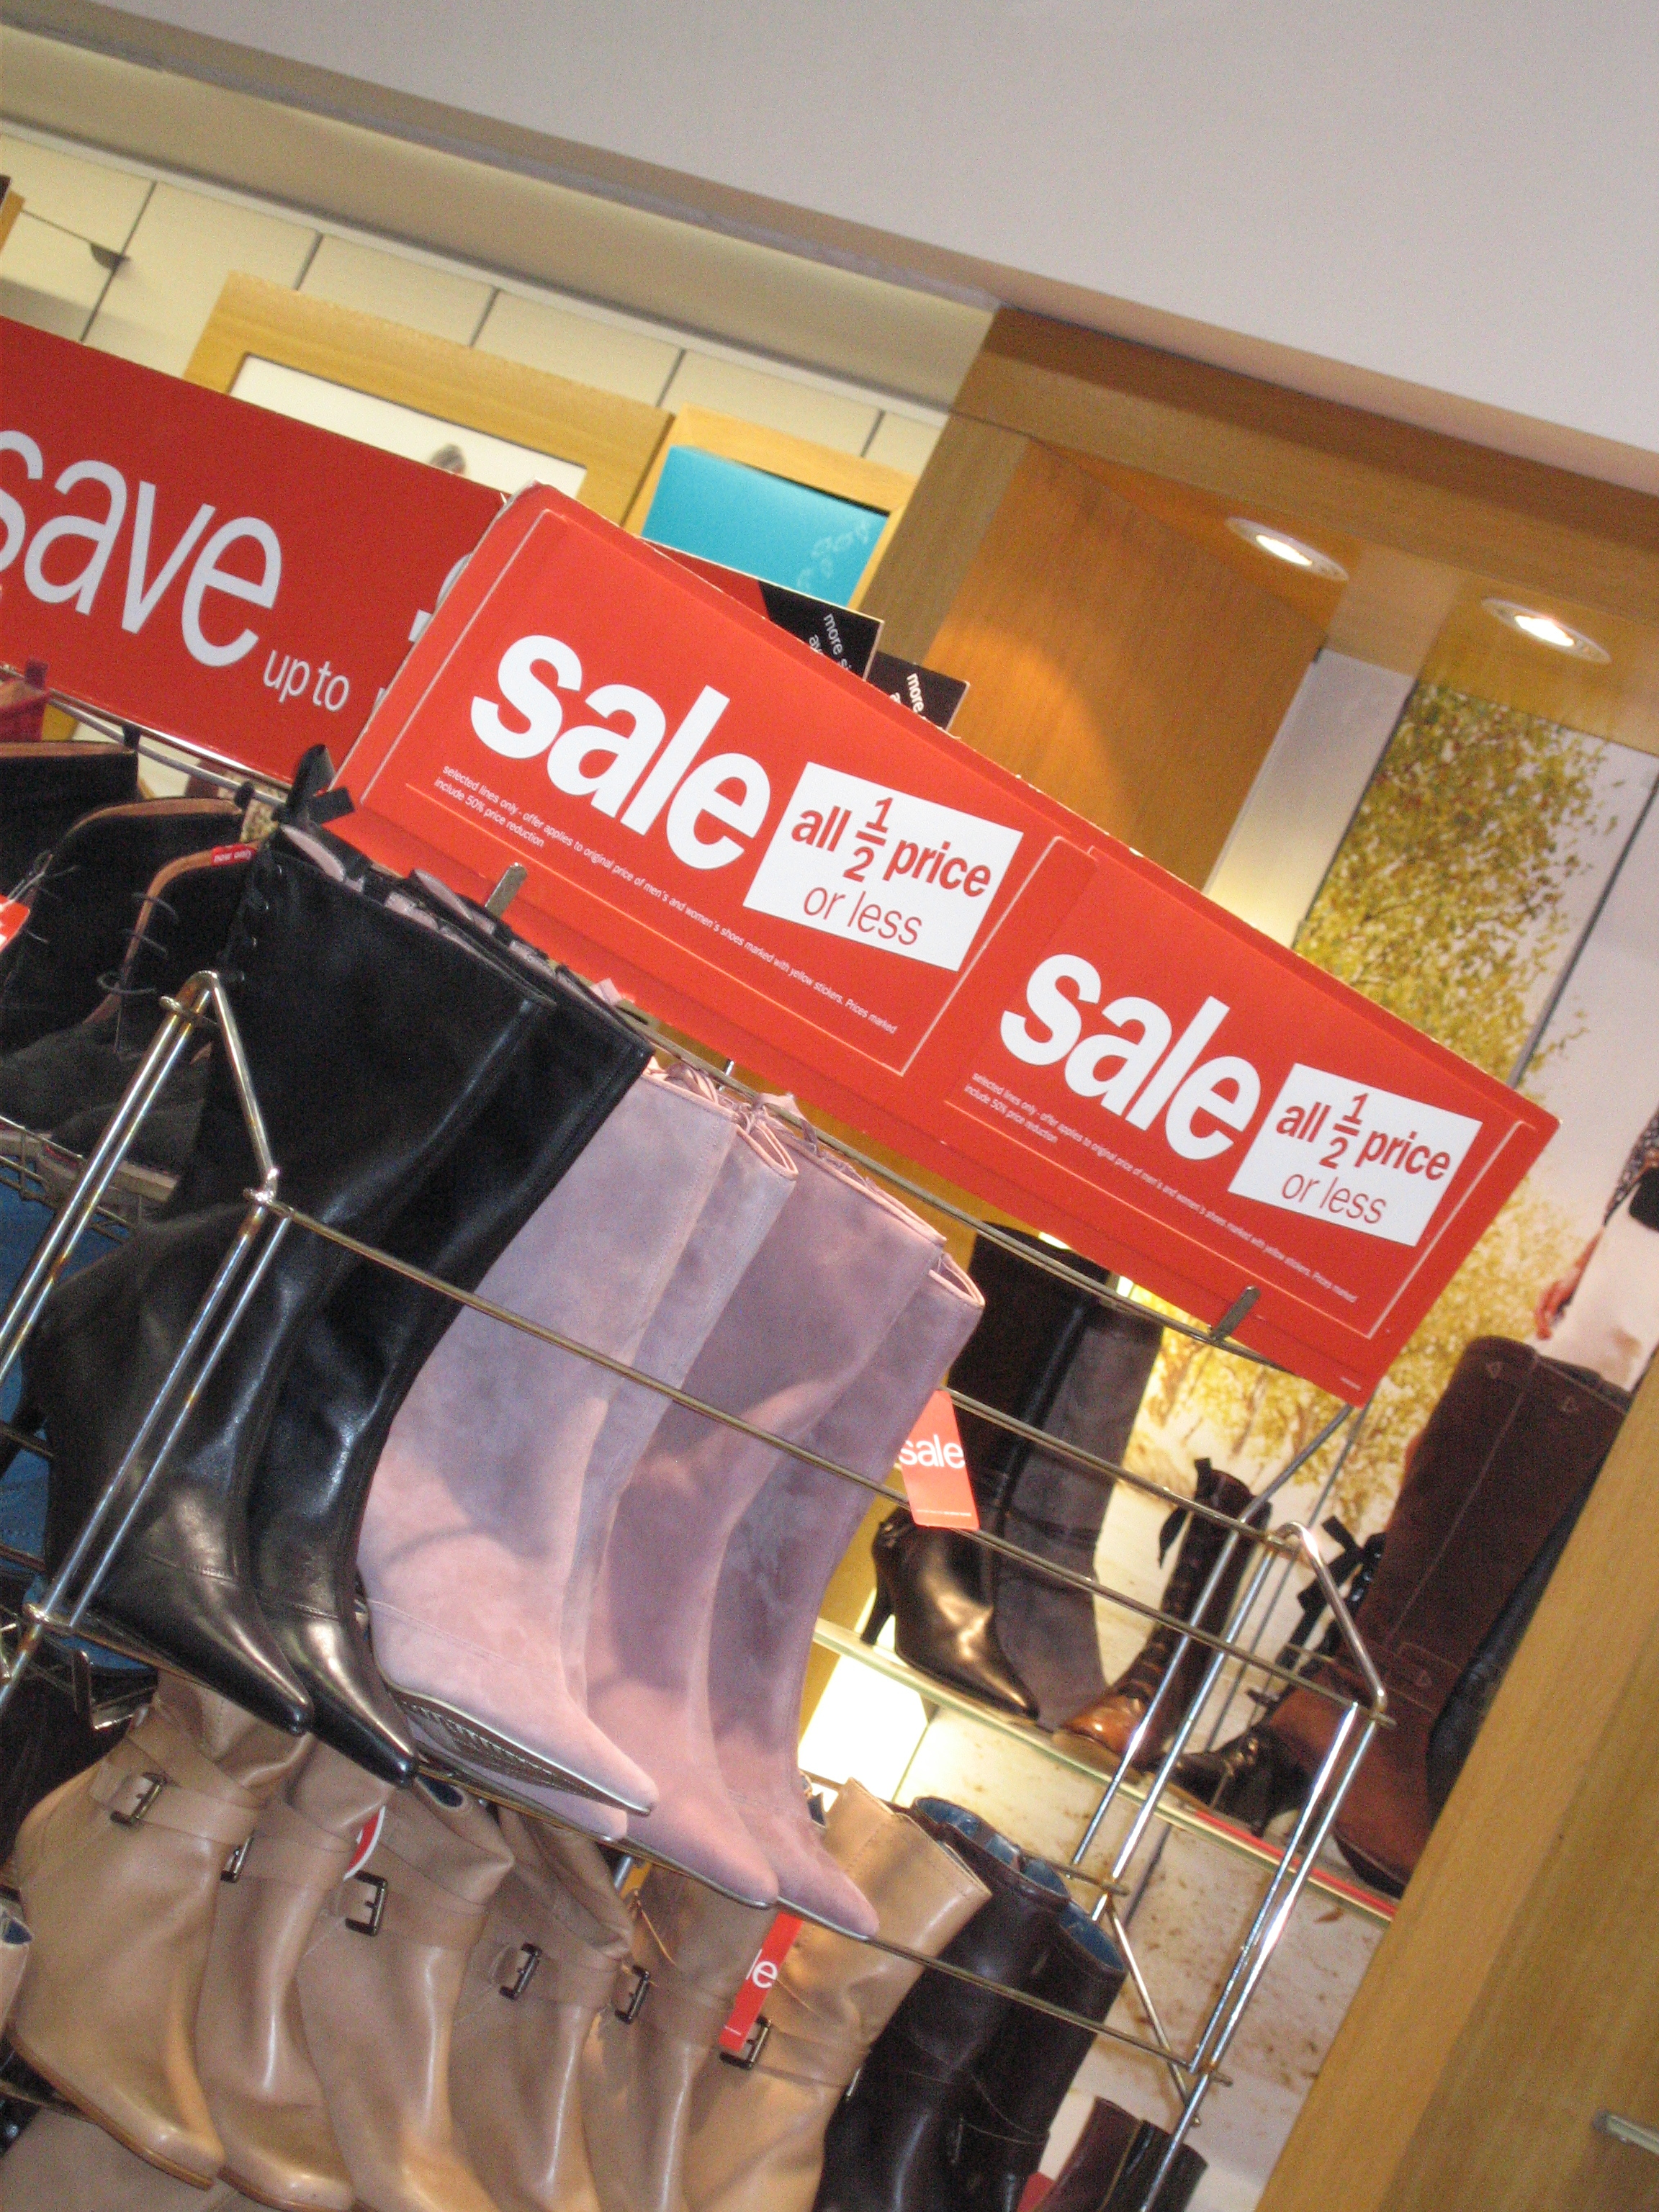 sales-posters-up-in-shop-windows-before-Christmas-in-harsh-retail-conditions-in-2005-Kingston-London-England-3-DHD.jpg